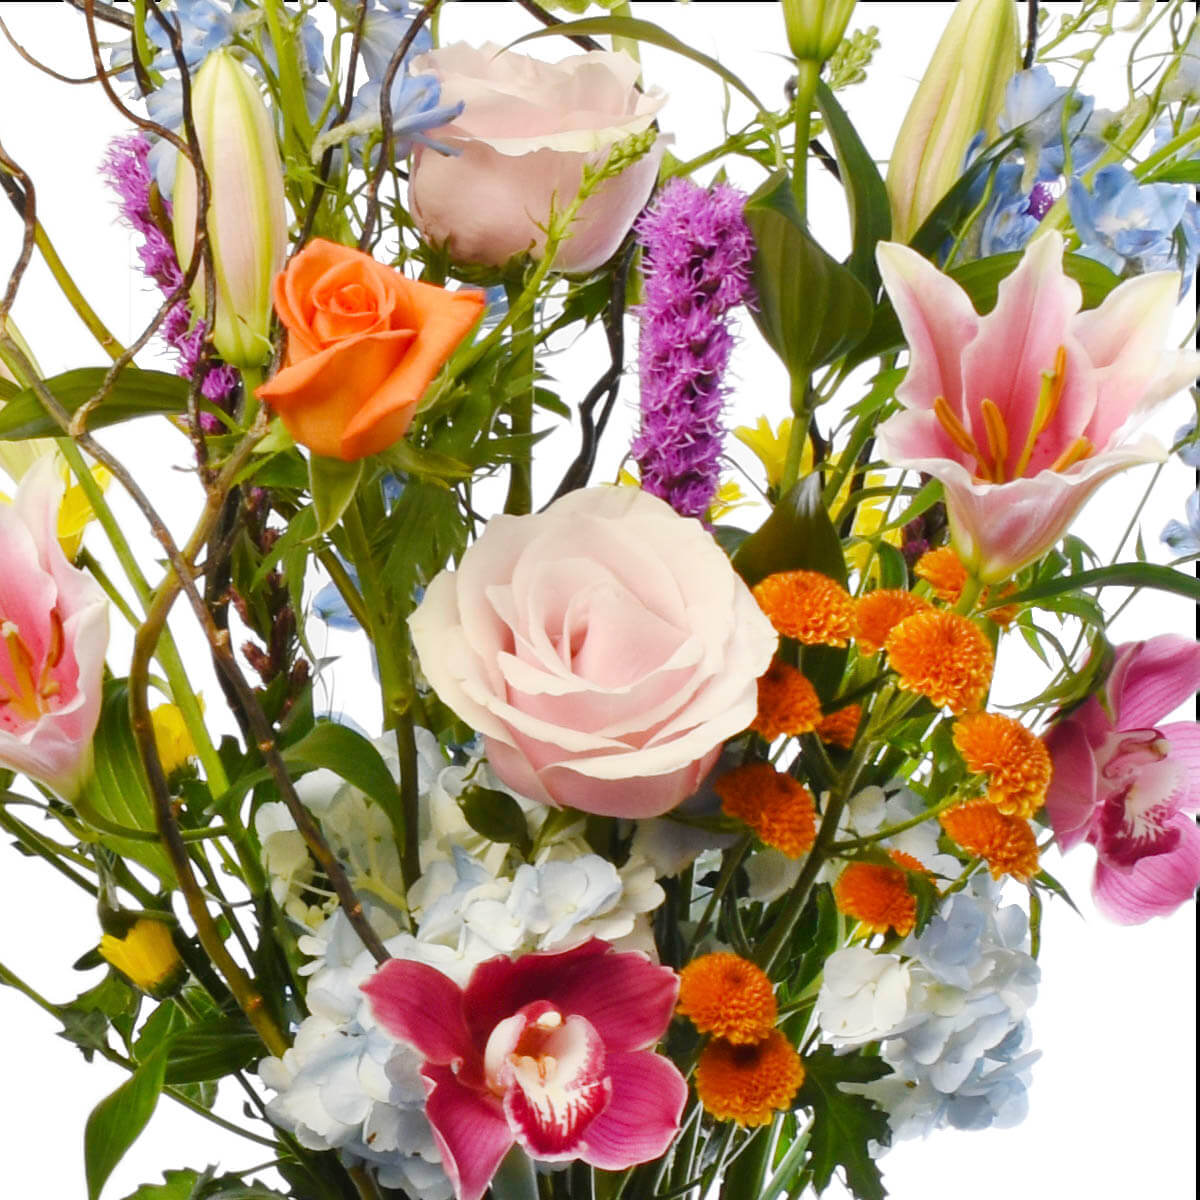 Send beautiful flowers to your mom's on her special day from Adele Rae Florist online flower delivery.